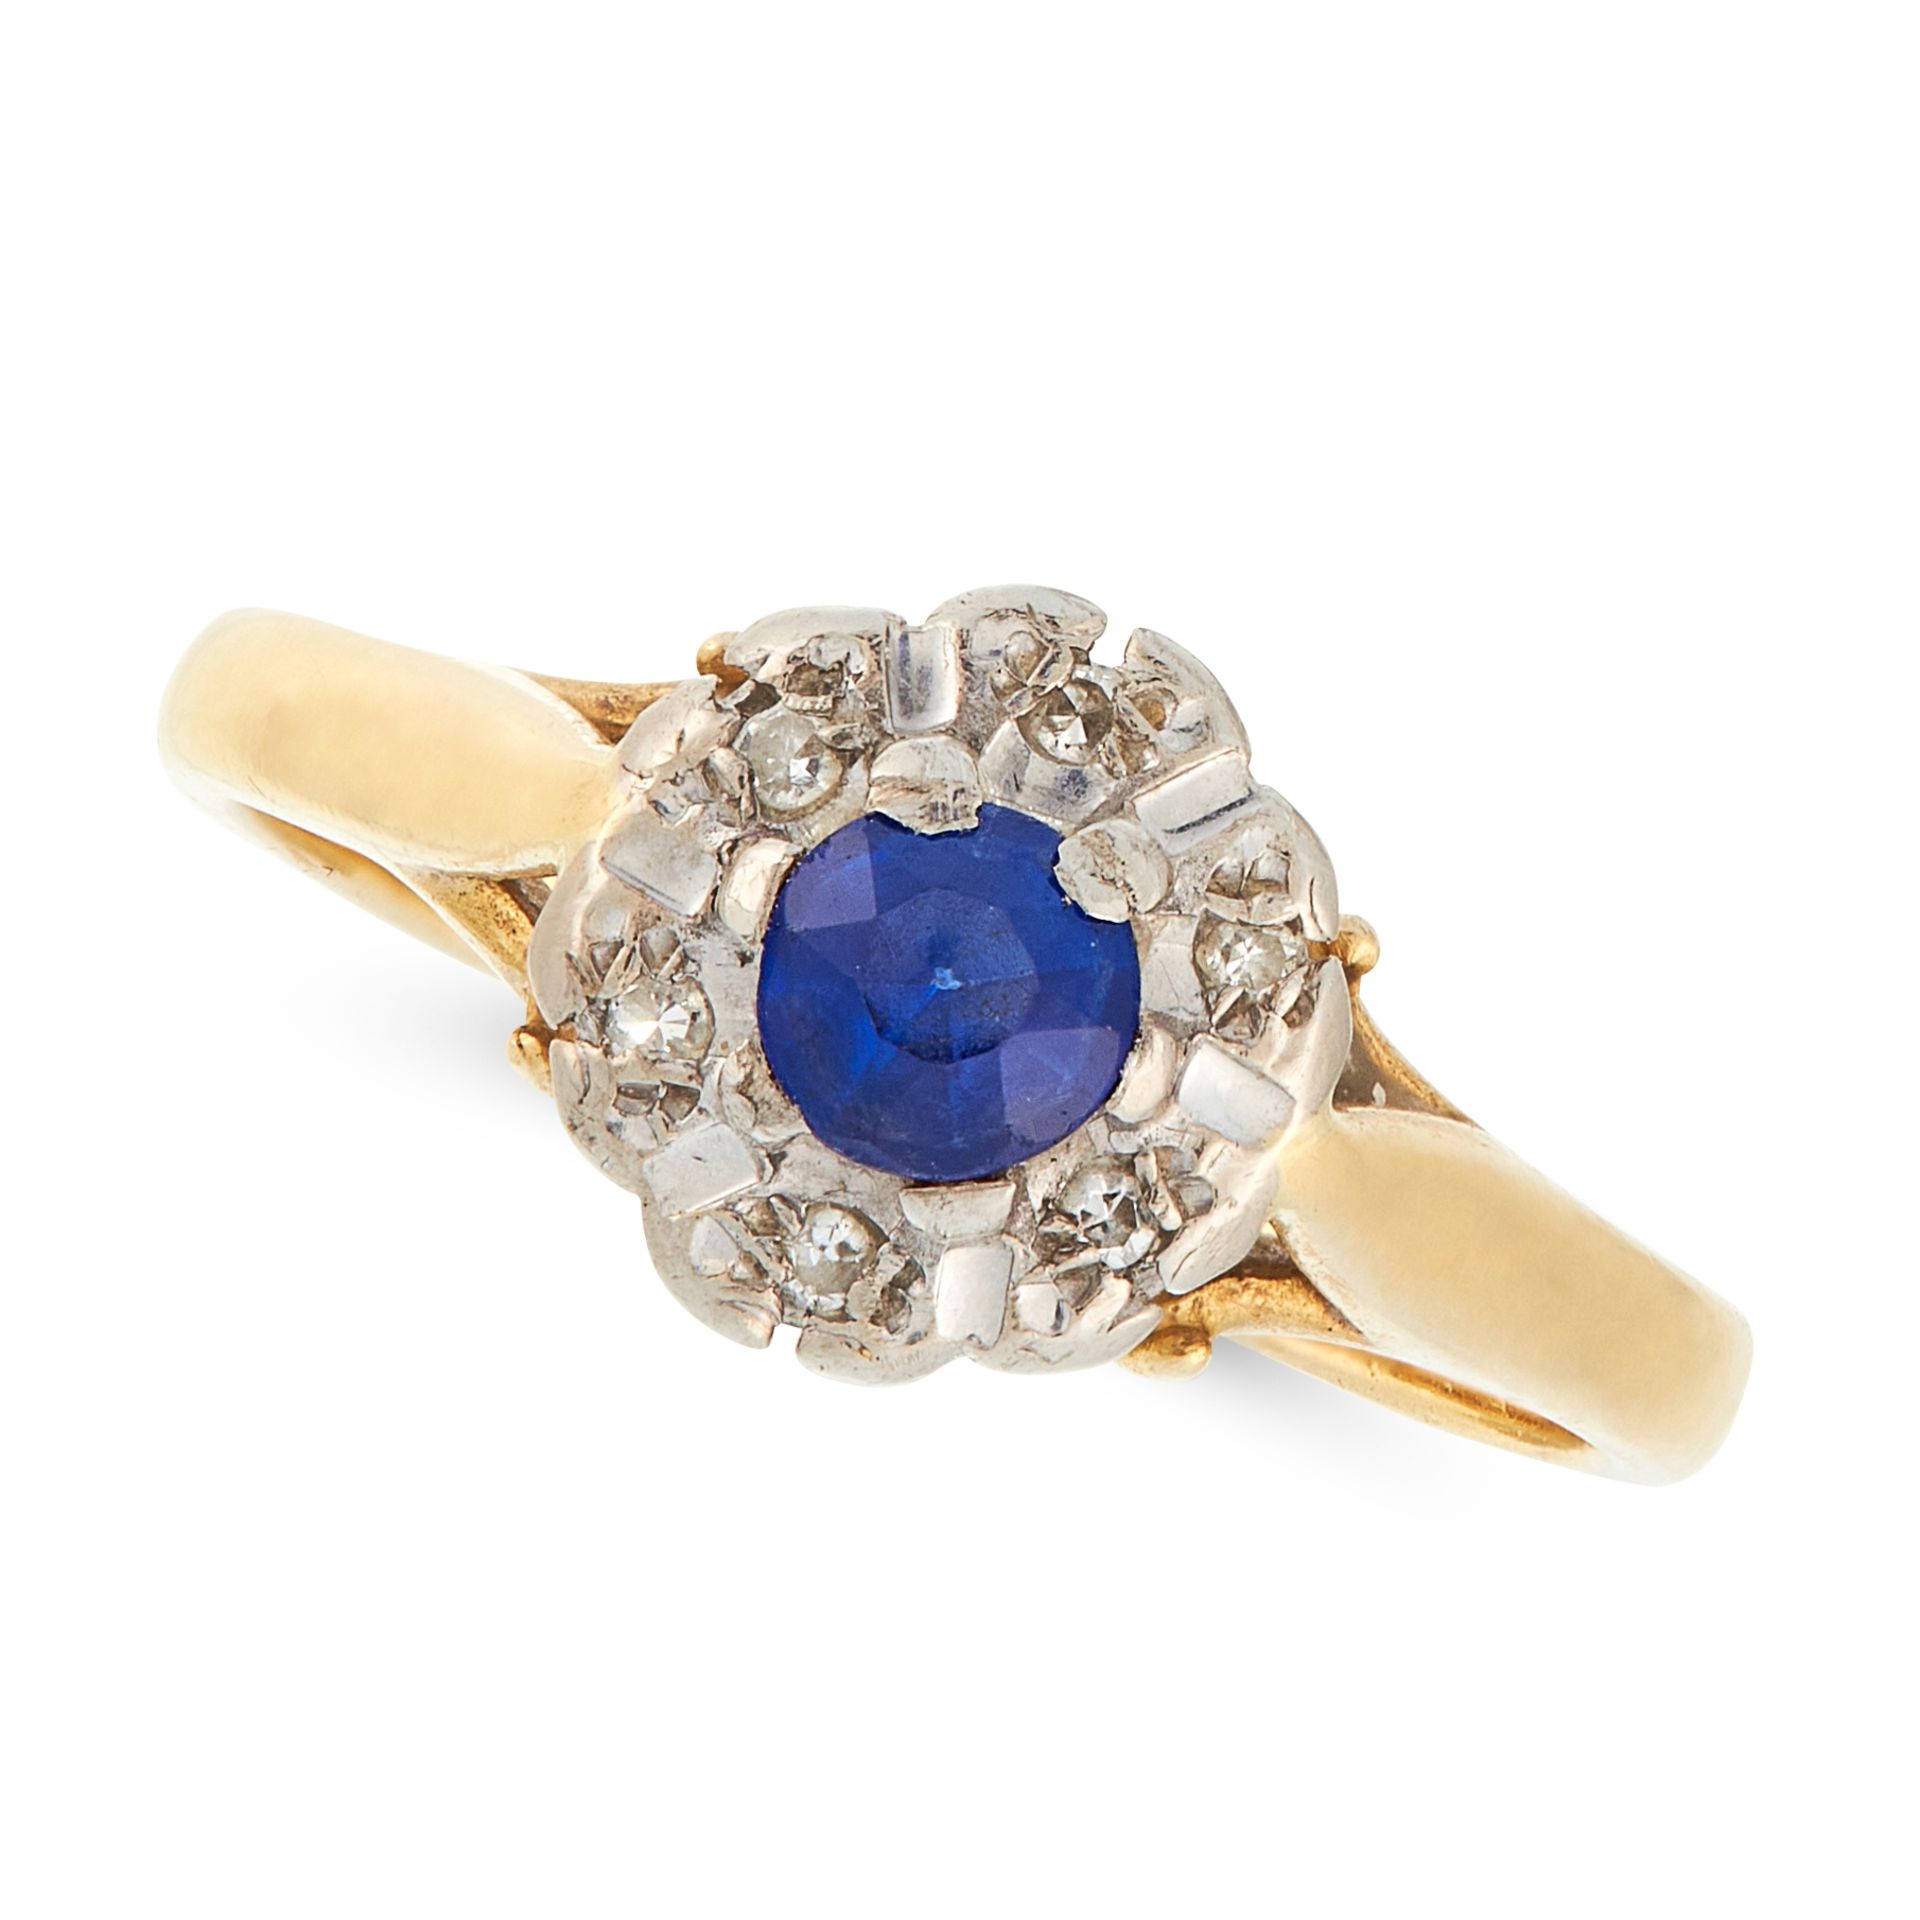 A SAPPHIRE AND DIAMOND CLUSTER RING in 18ct yellow gold, set with a round cut sapphire in a border